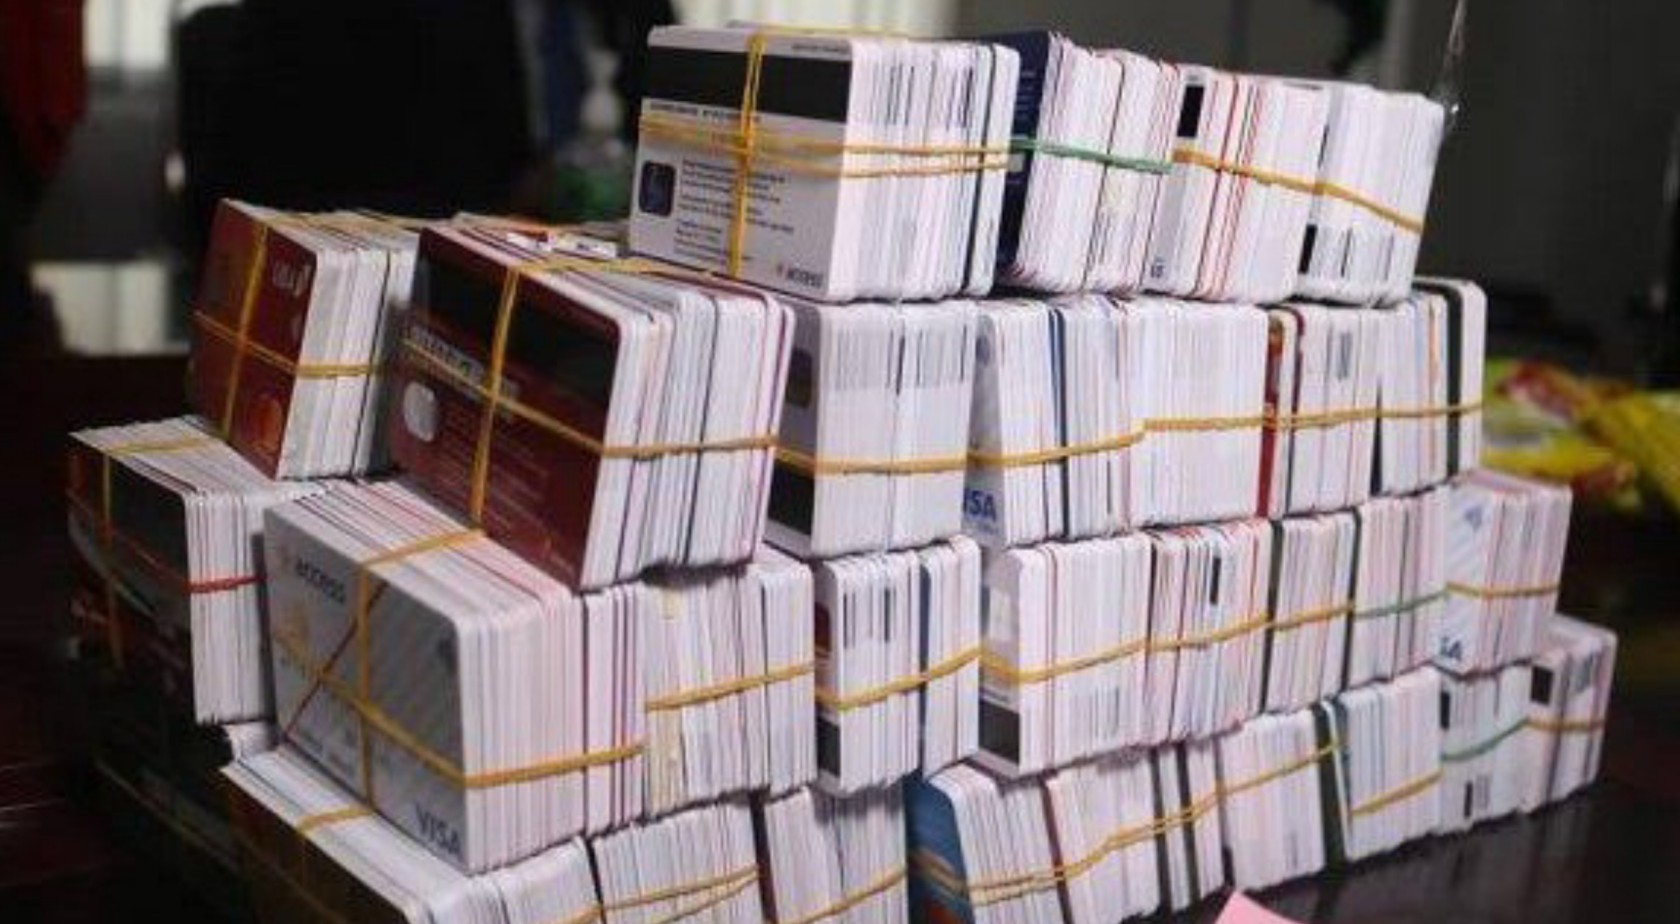 Customs arrest Dubai-bound passenger with 5,342 ATM cards in Kano